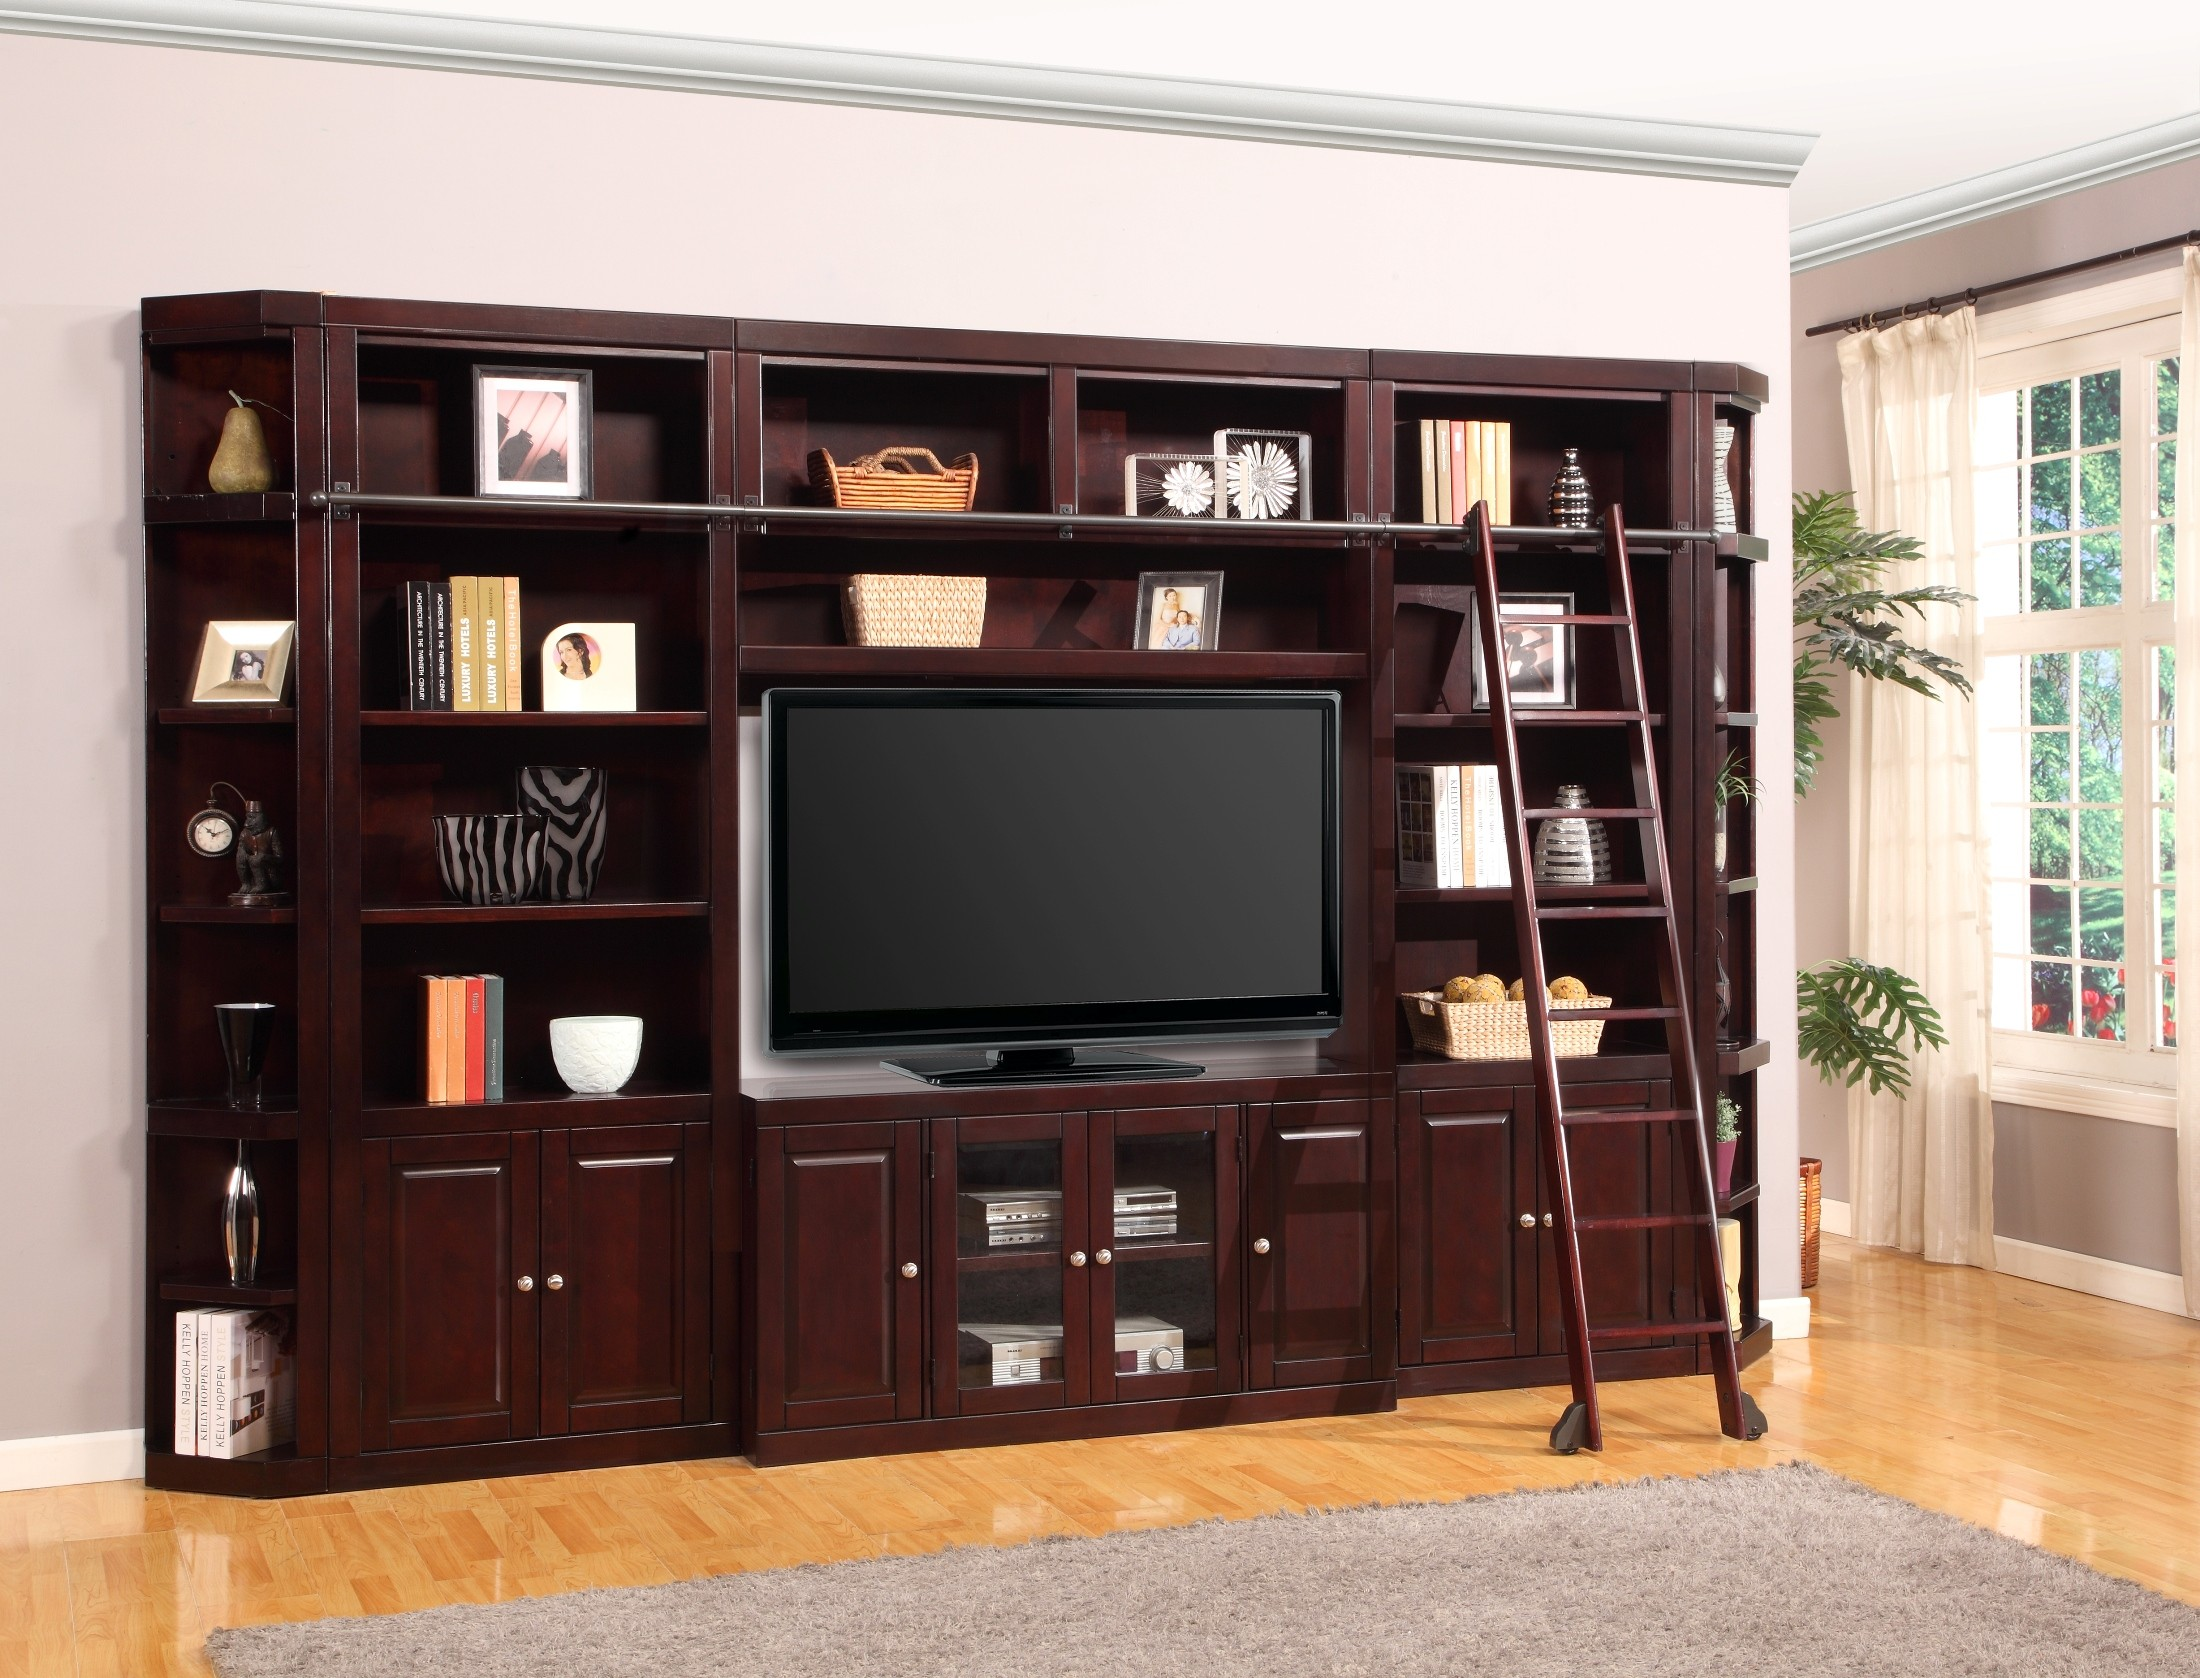 family with entertainment space cabinets and design contemporary floor open secretary unit desk furniture bookshelf your white center rug wood in home on small ideas room bookshelves storage plus for dark